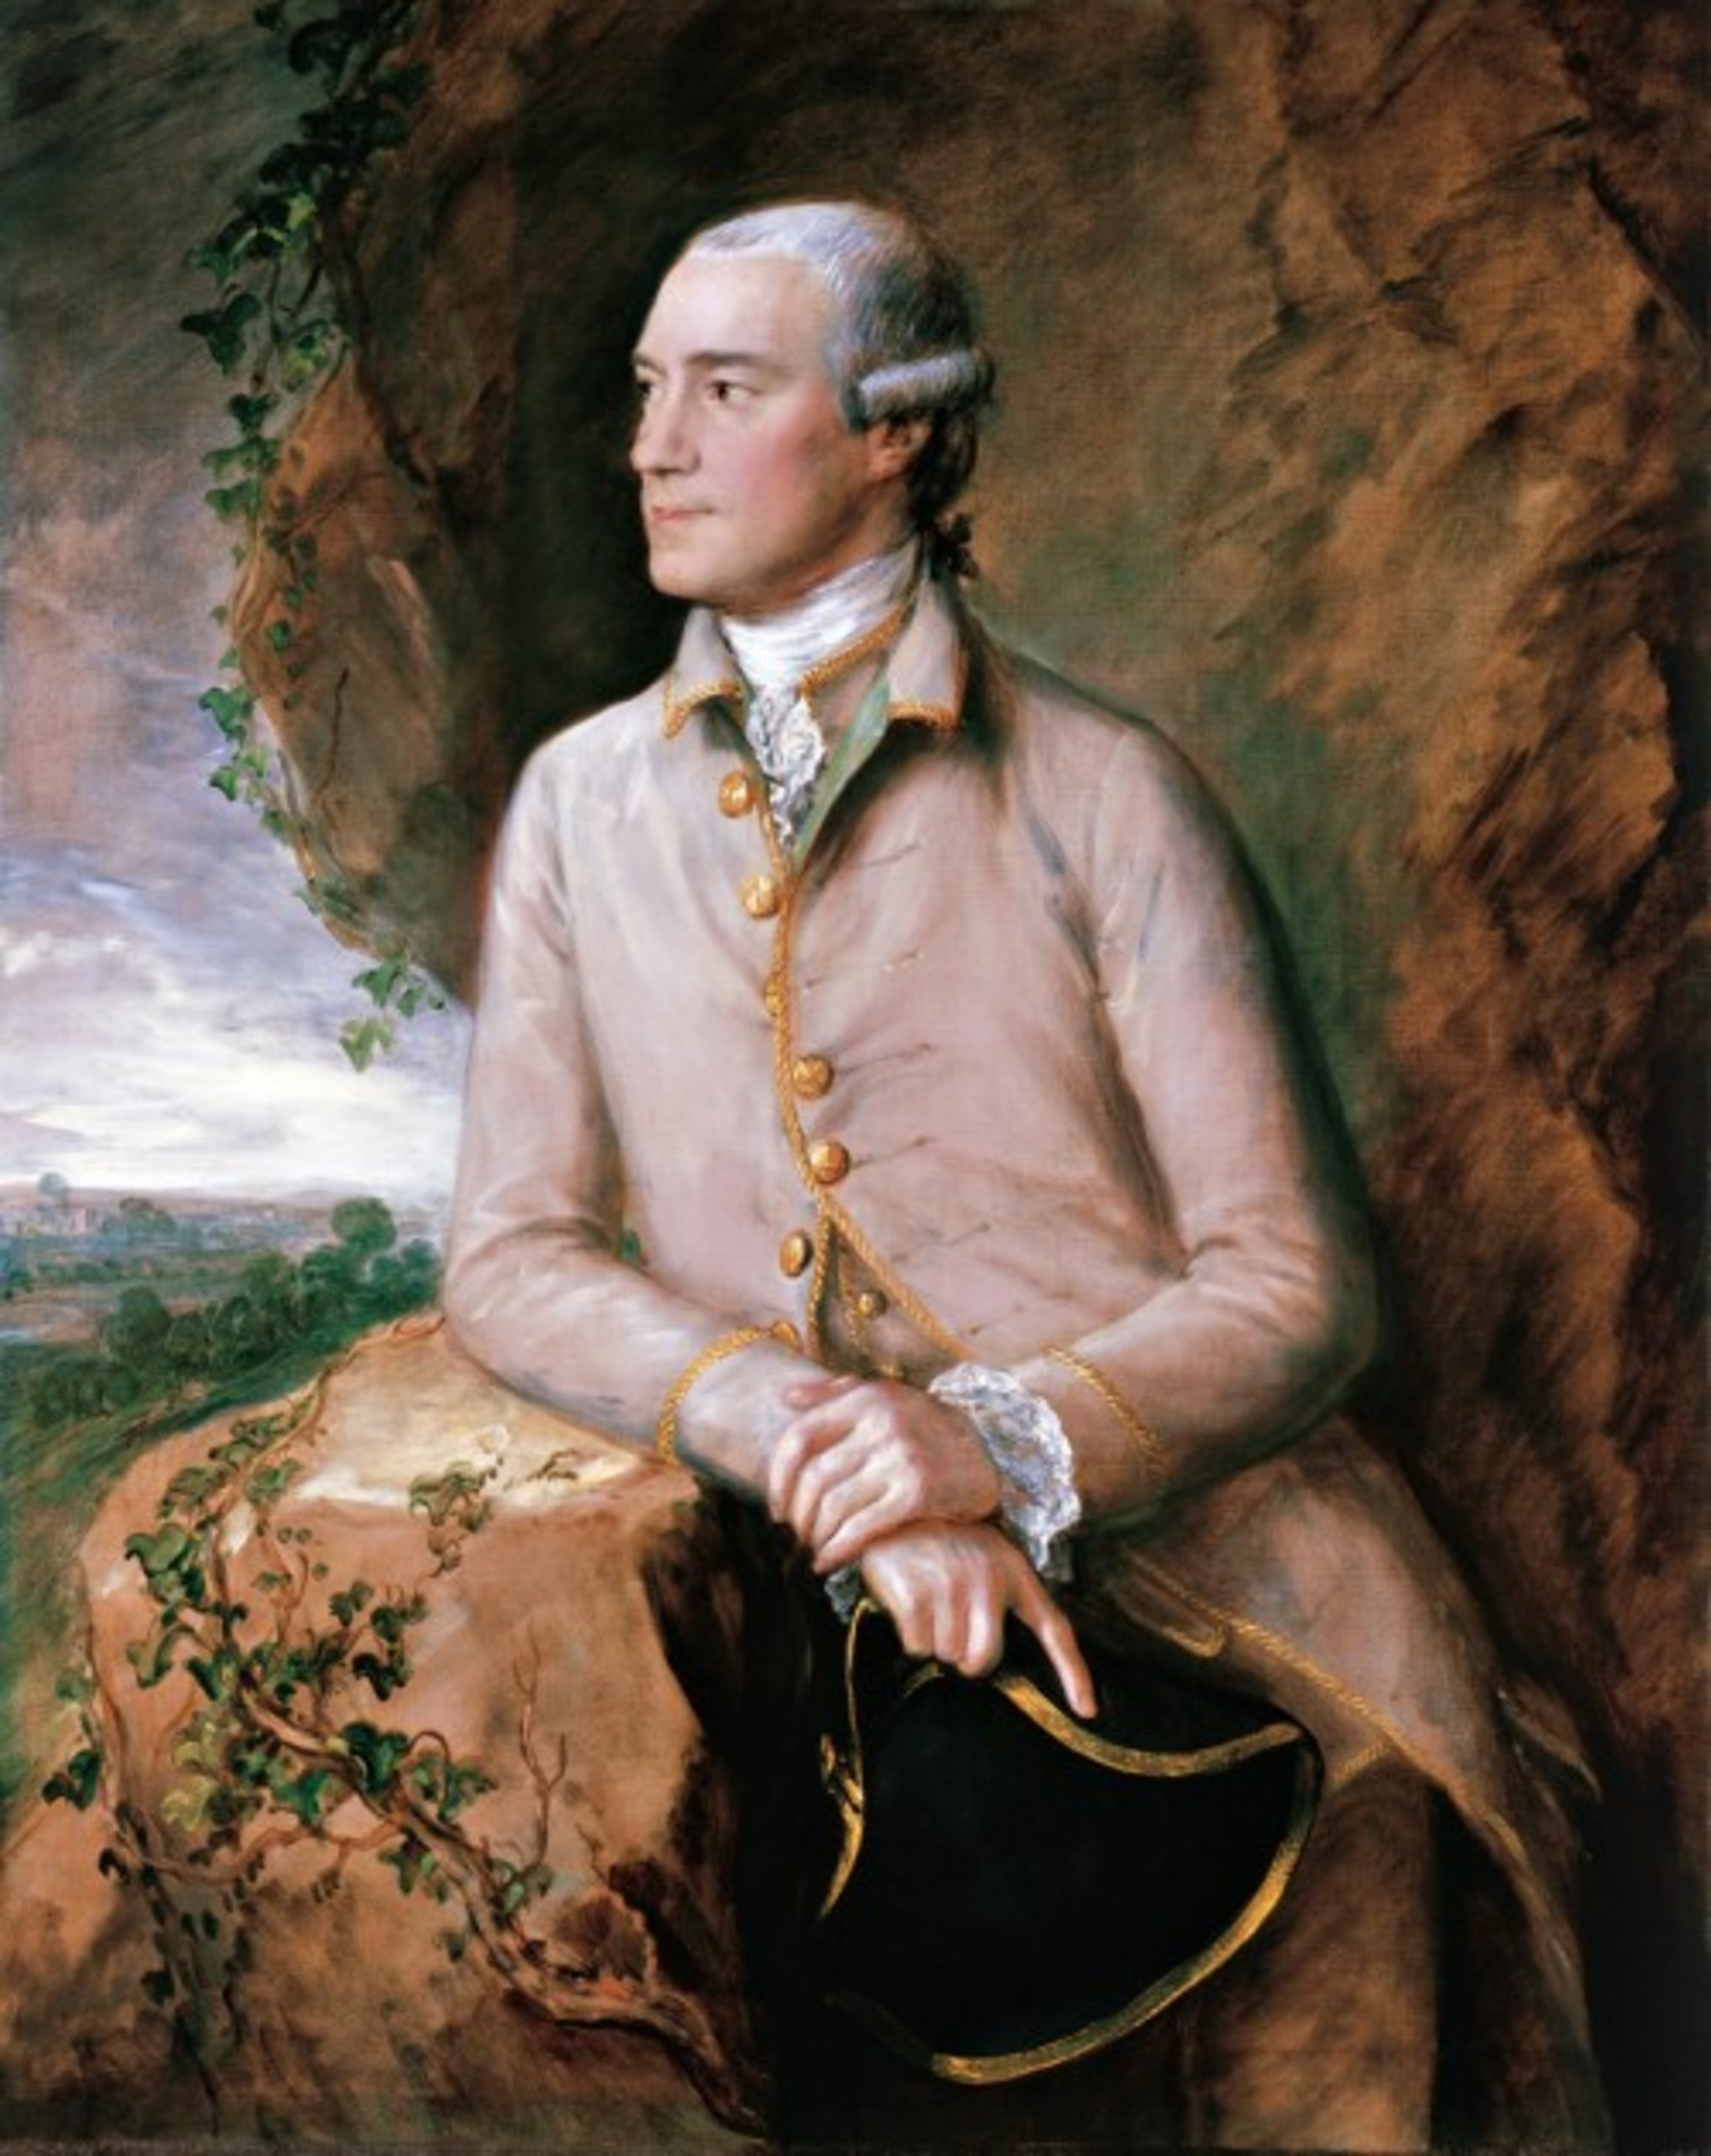 Thomas_Gainsborough_-_Portrait_of_Joshua_Grigby.jpg